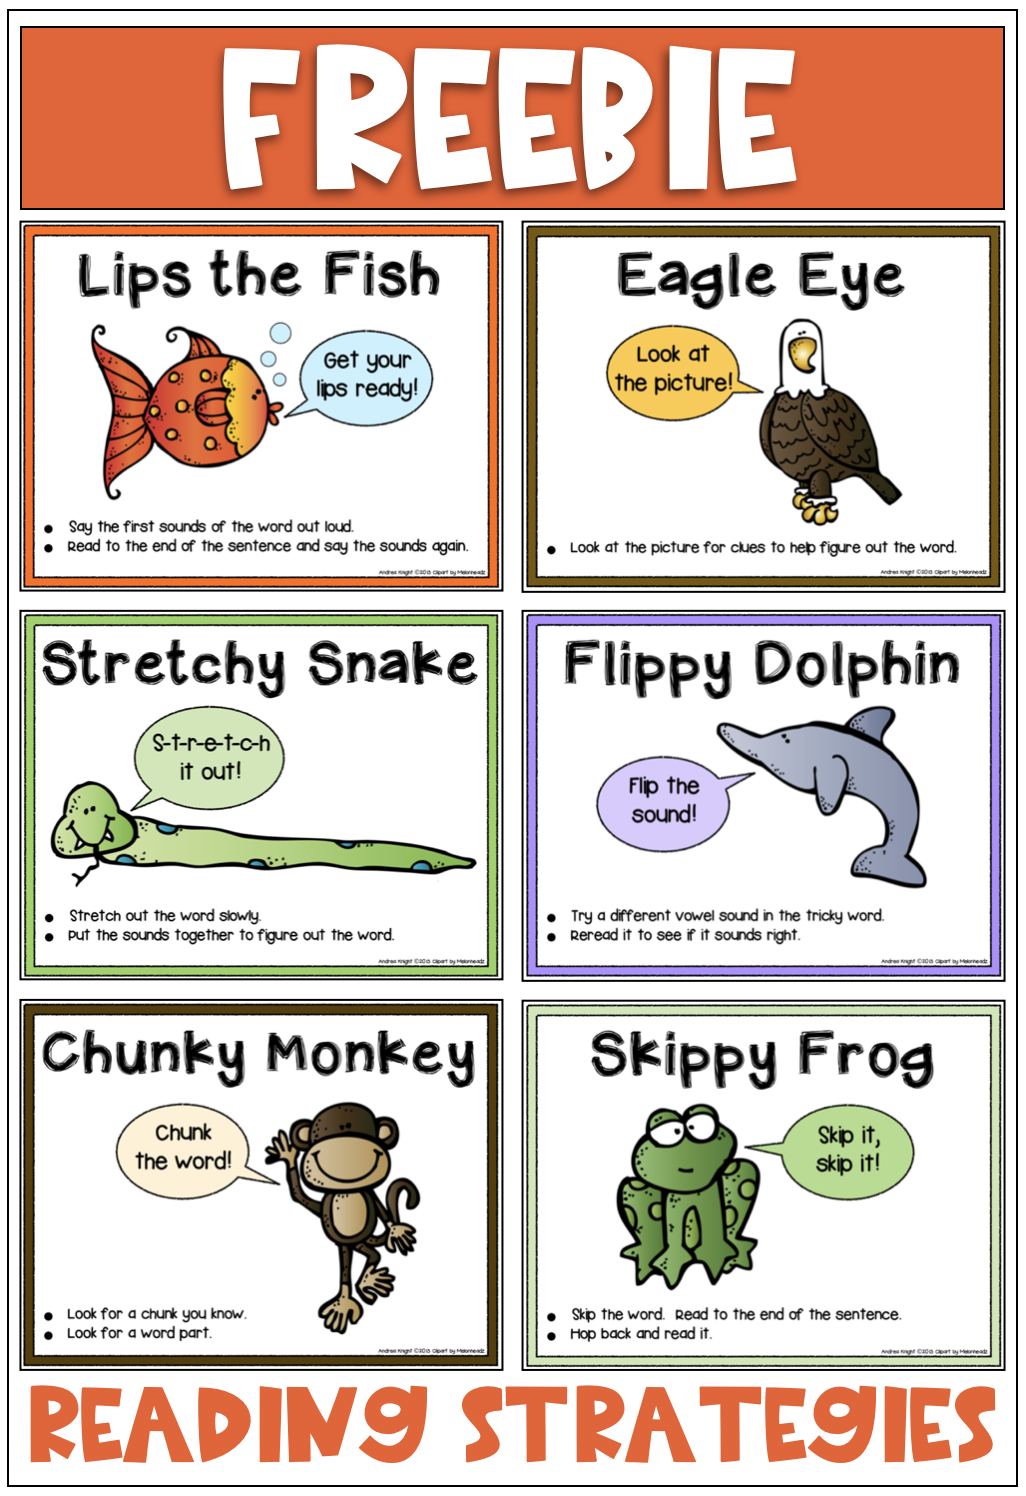 Reading Strategies for Early Readers